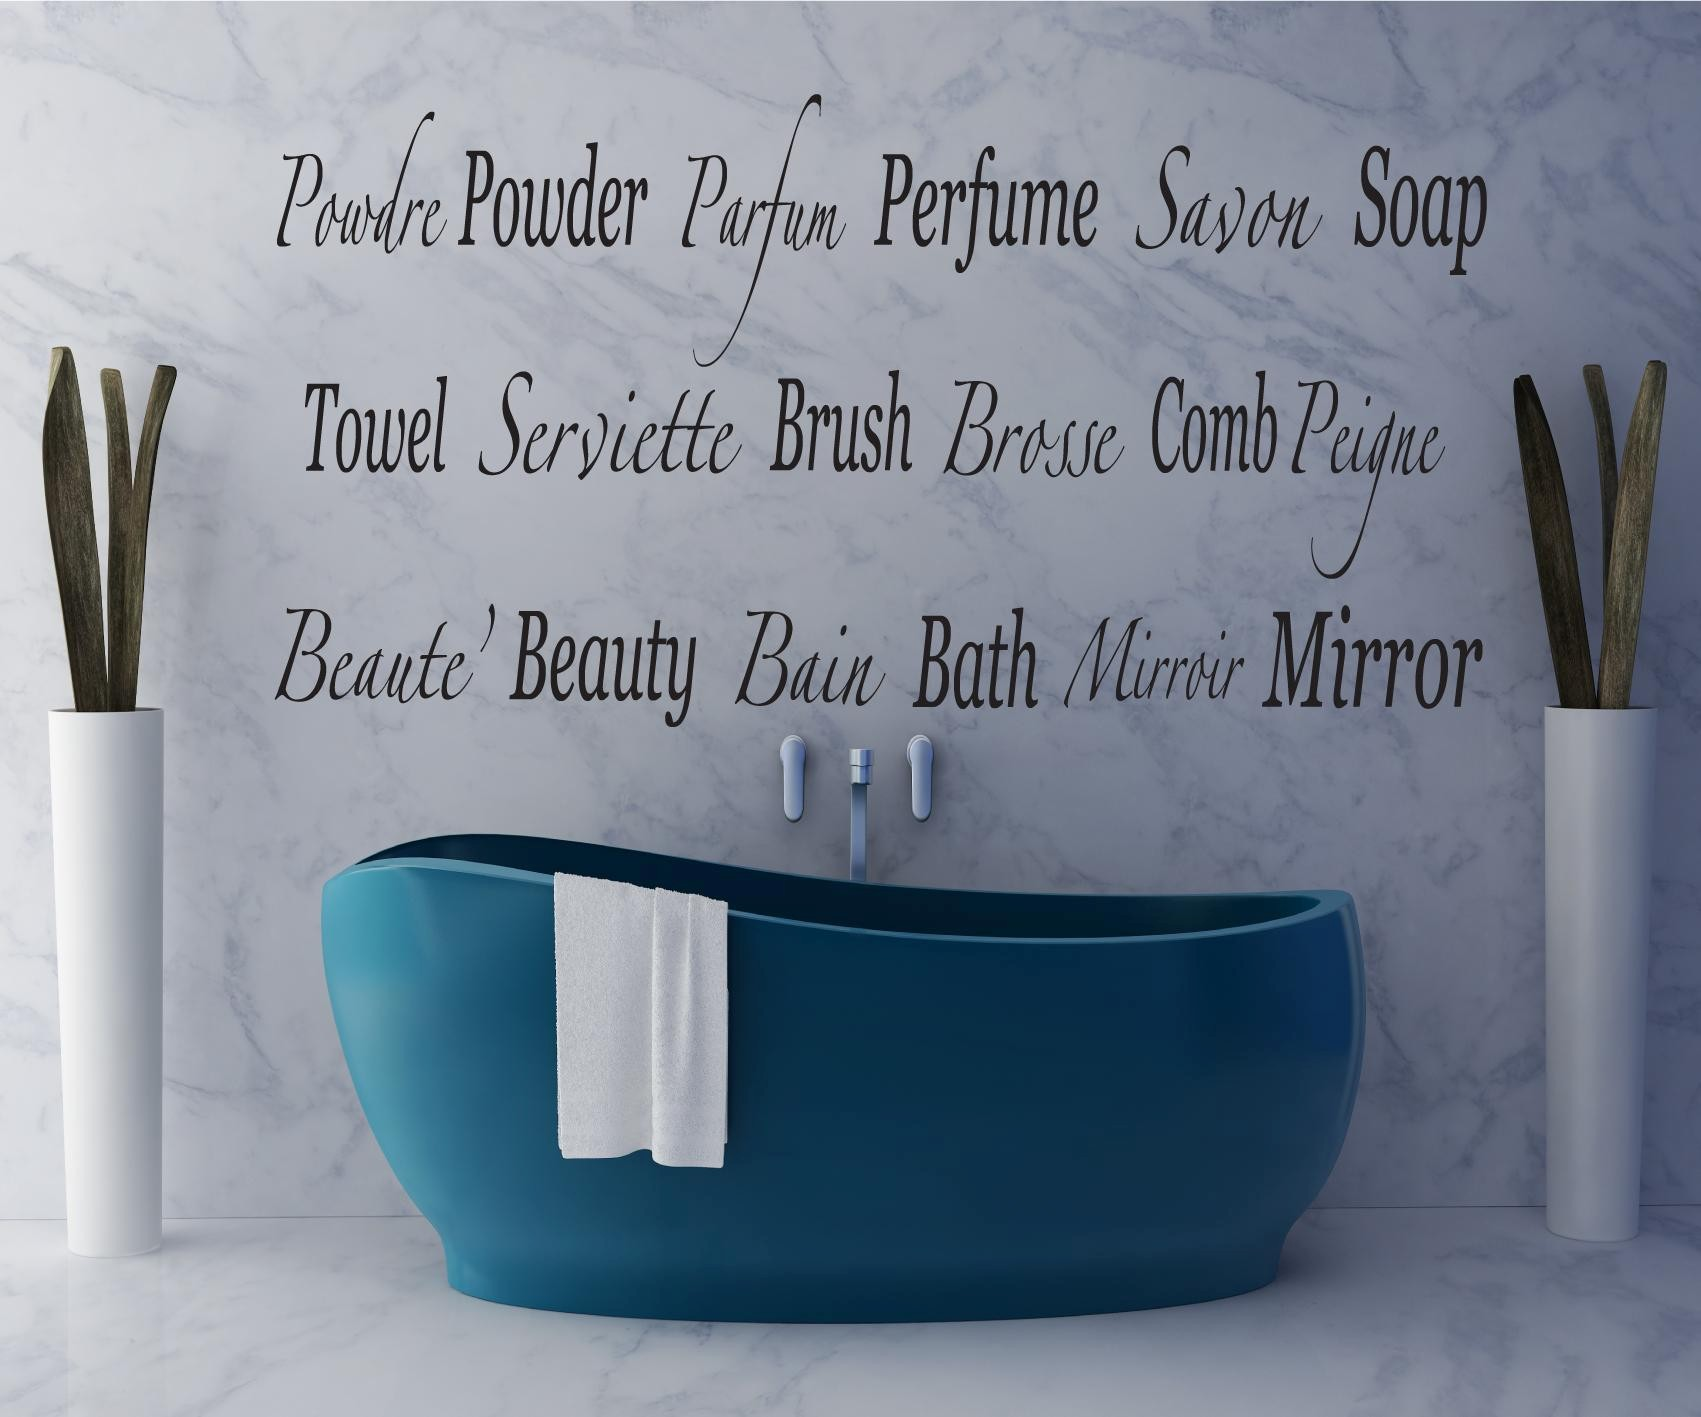 French Word for Bathroom Lovely Superior French Word for Bathroom Part Words Idolza Gallery